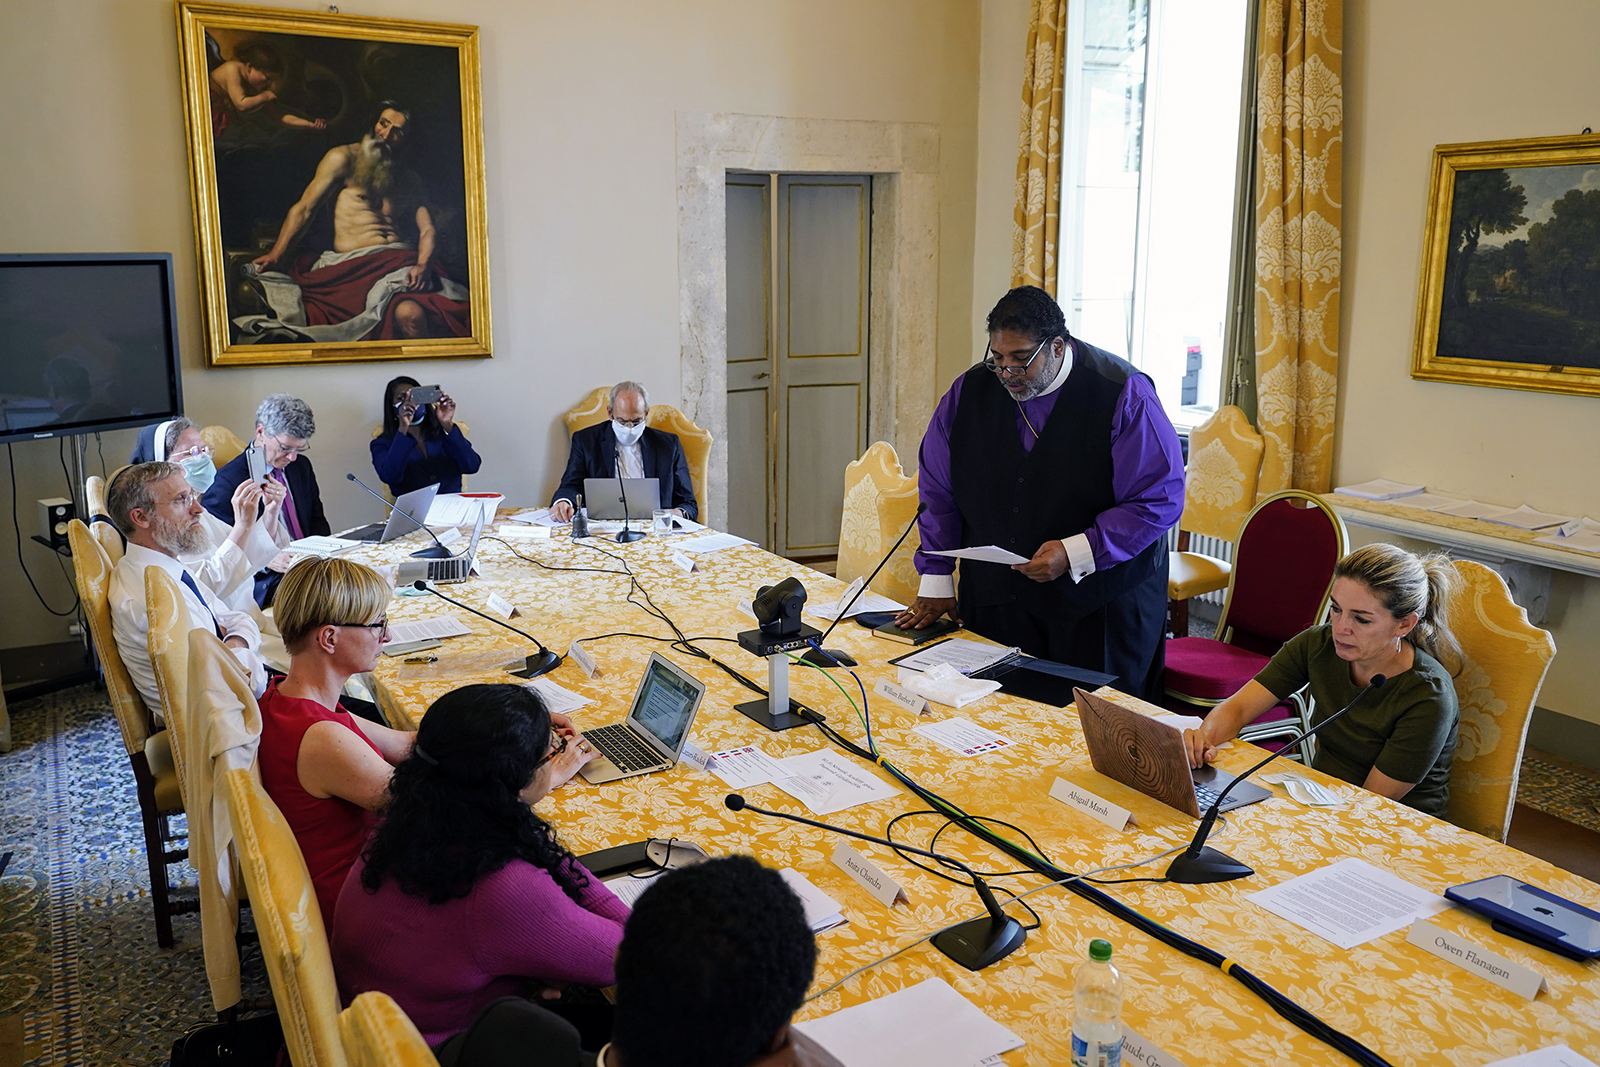 """The Rev. William Barber II, standing, addresses the poverty conferency titled """"Caritas, Social Friendship, and the End of Poverty,"""" organized by the Pontifical Academy of Social Sciences, at the Vatican, Monday, Oct. 4, 2021.Photo by Gabriella Clare Marino"""